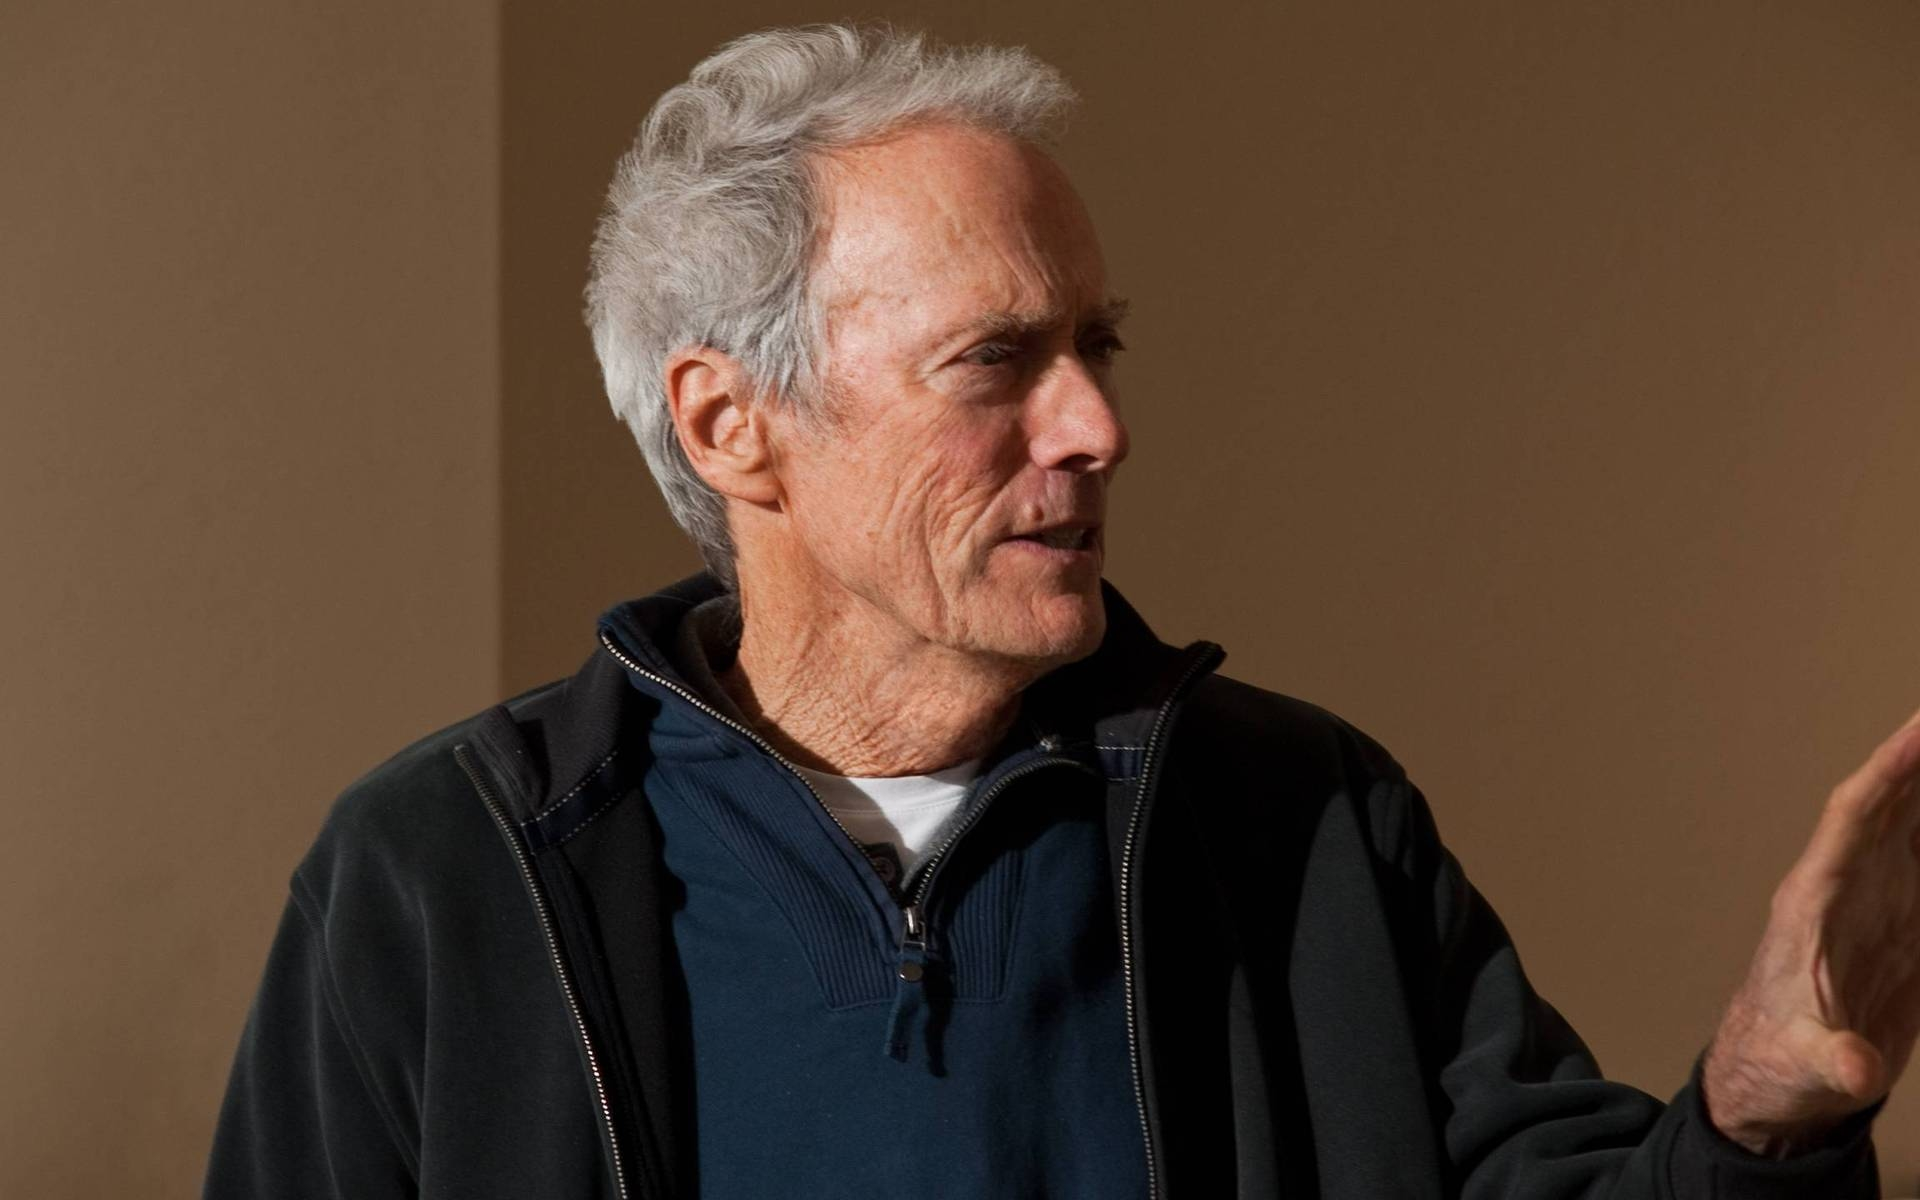 Clint Eastwood Close-Up for 1920 x 1200 widescreen resolution